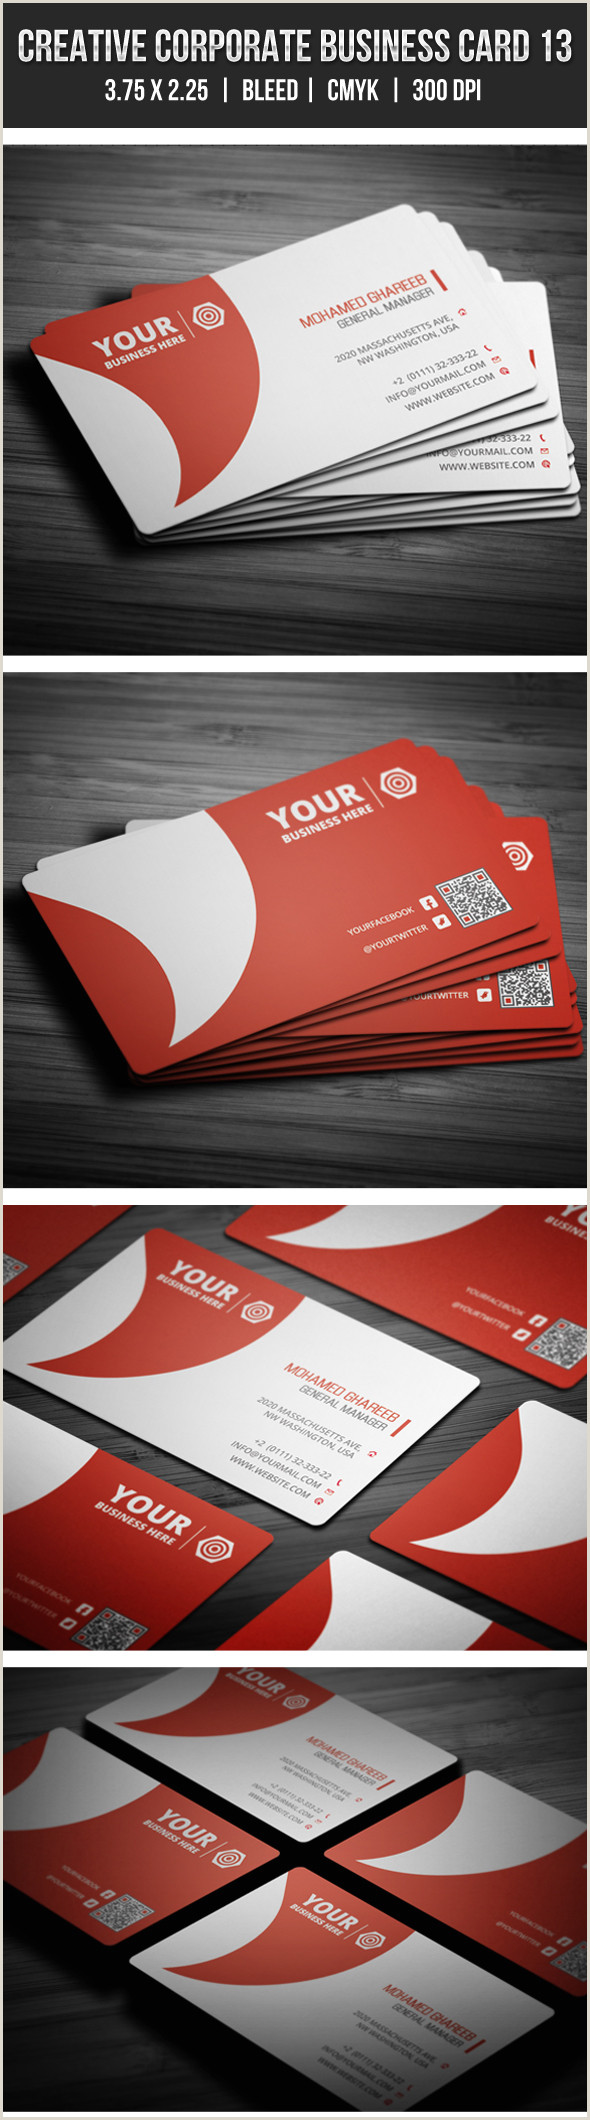 Website On Business Card Clean Red Corporate Business Card Template With Embedded Qr